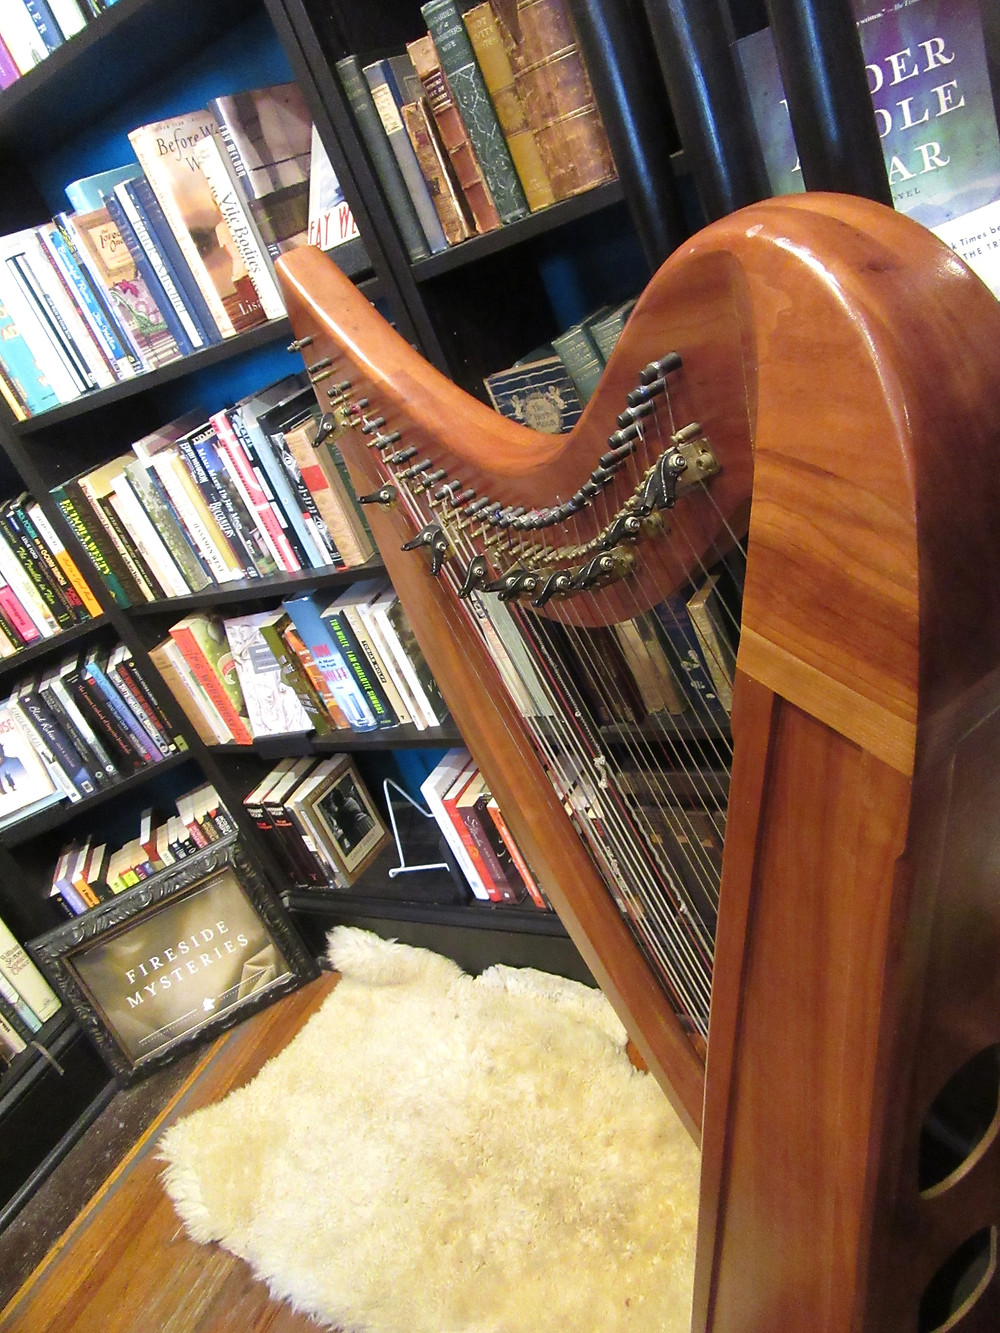 harp in foreground with books on shelves in background